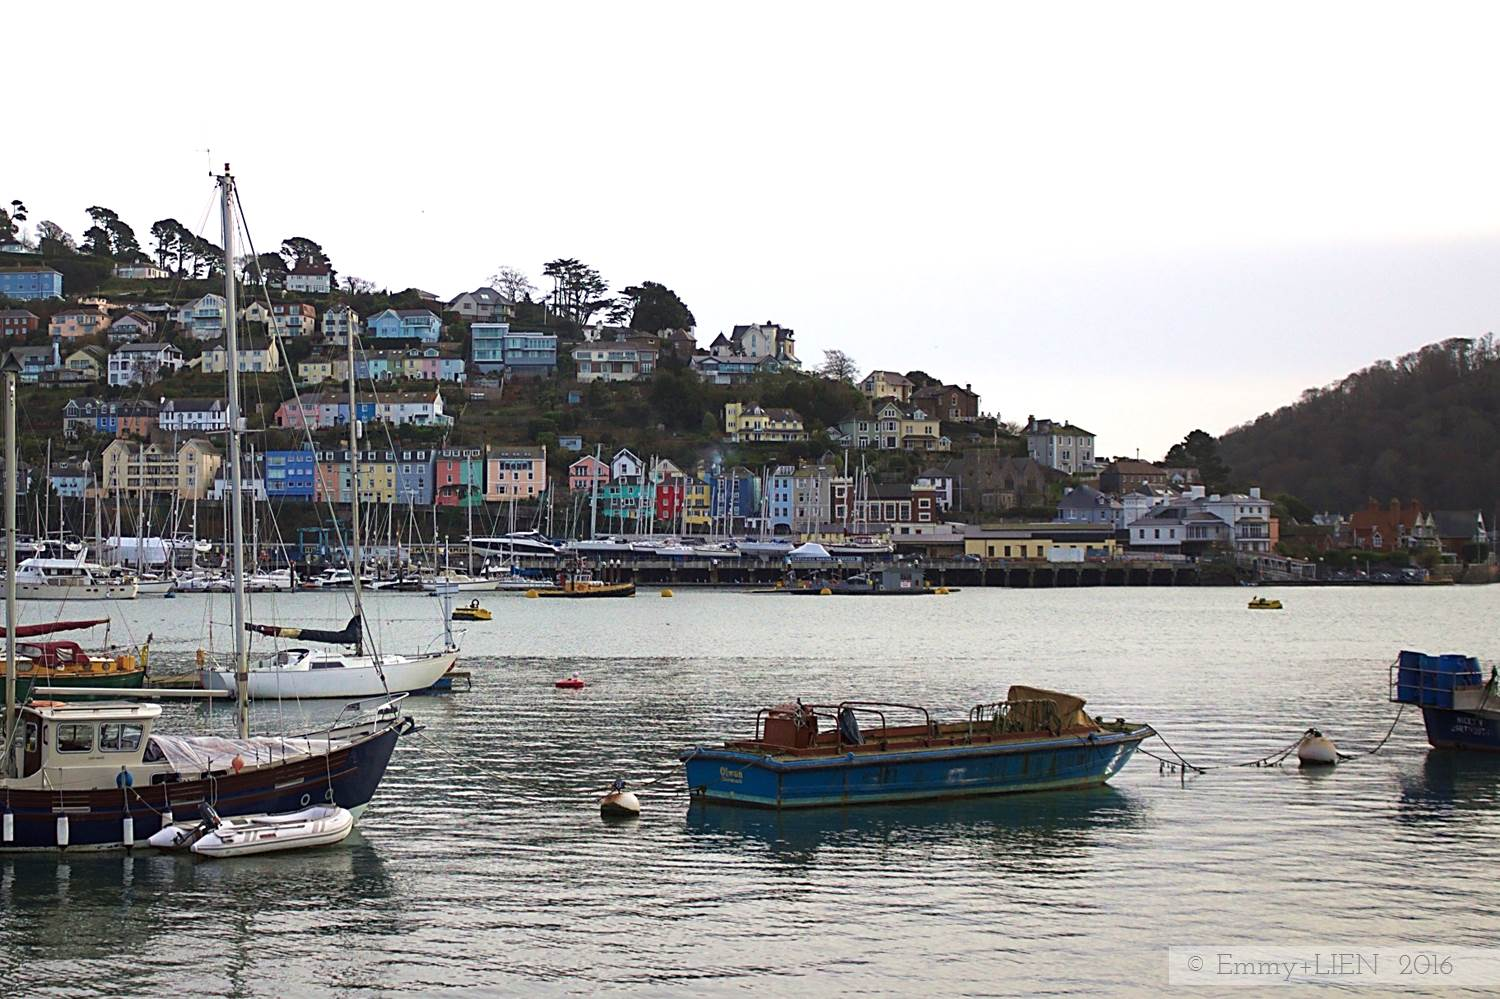 Dartmouth in Devon, UK